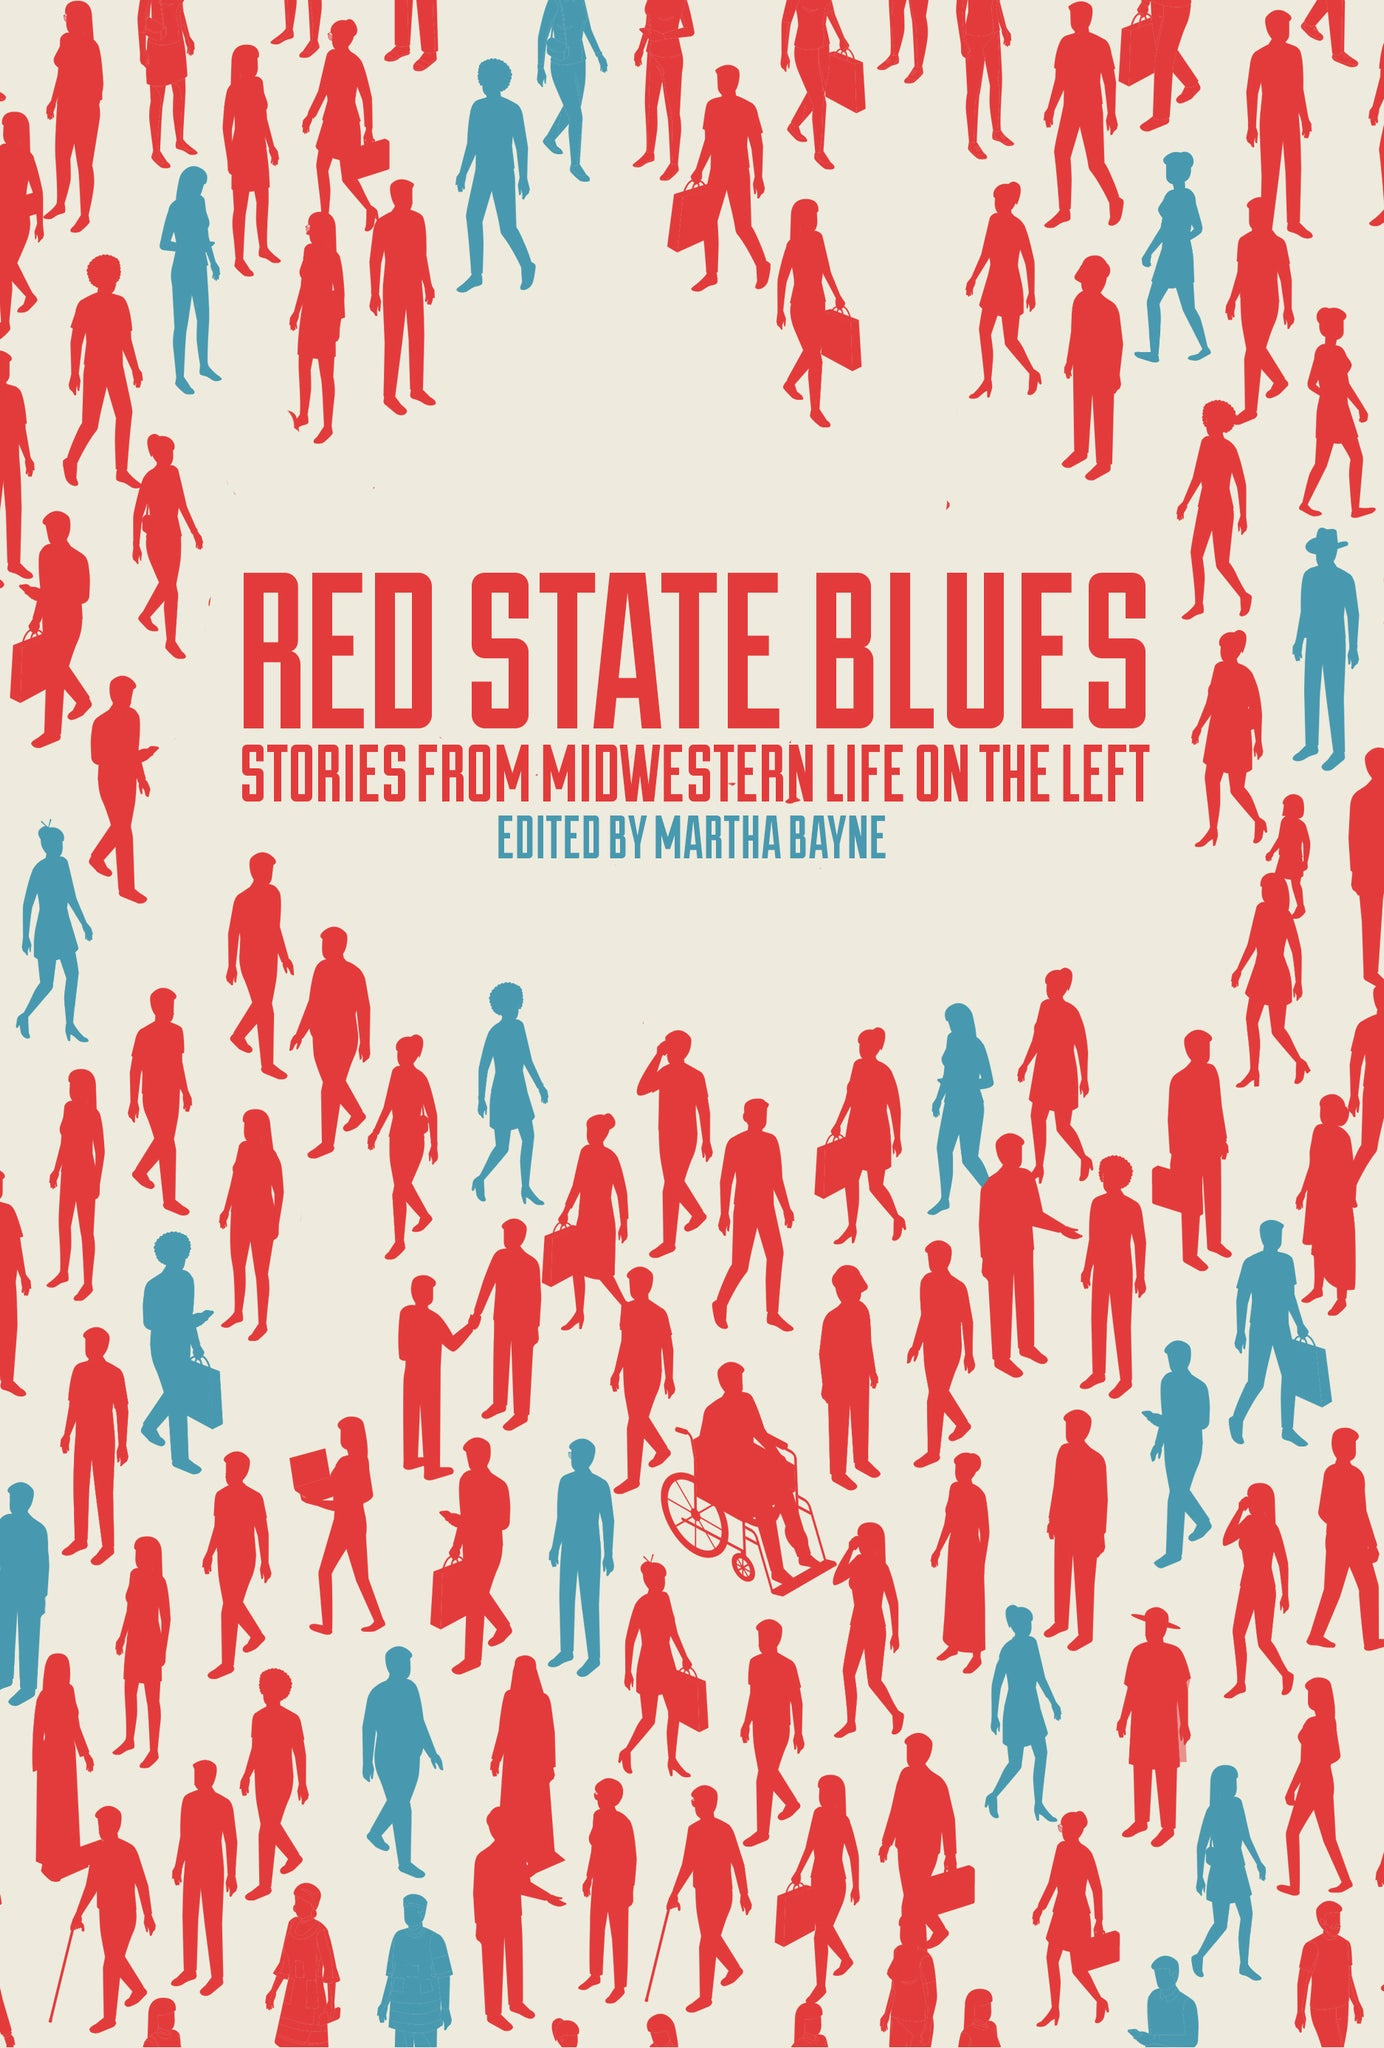 Red State Blues: Stories from Midwestern Life on the Left